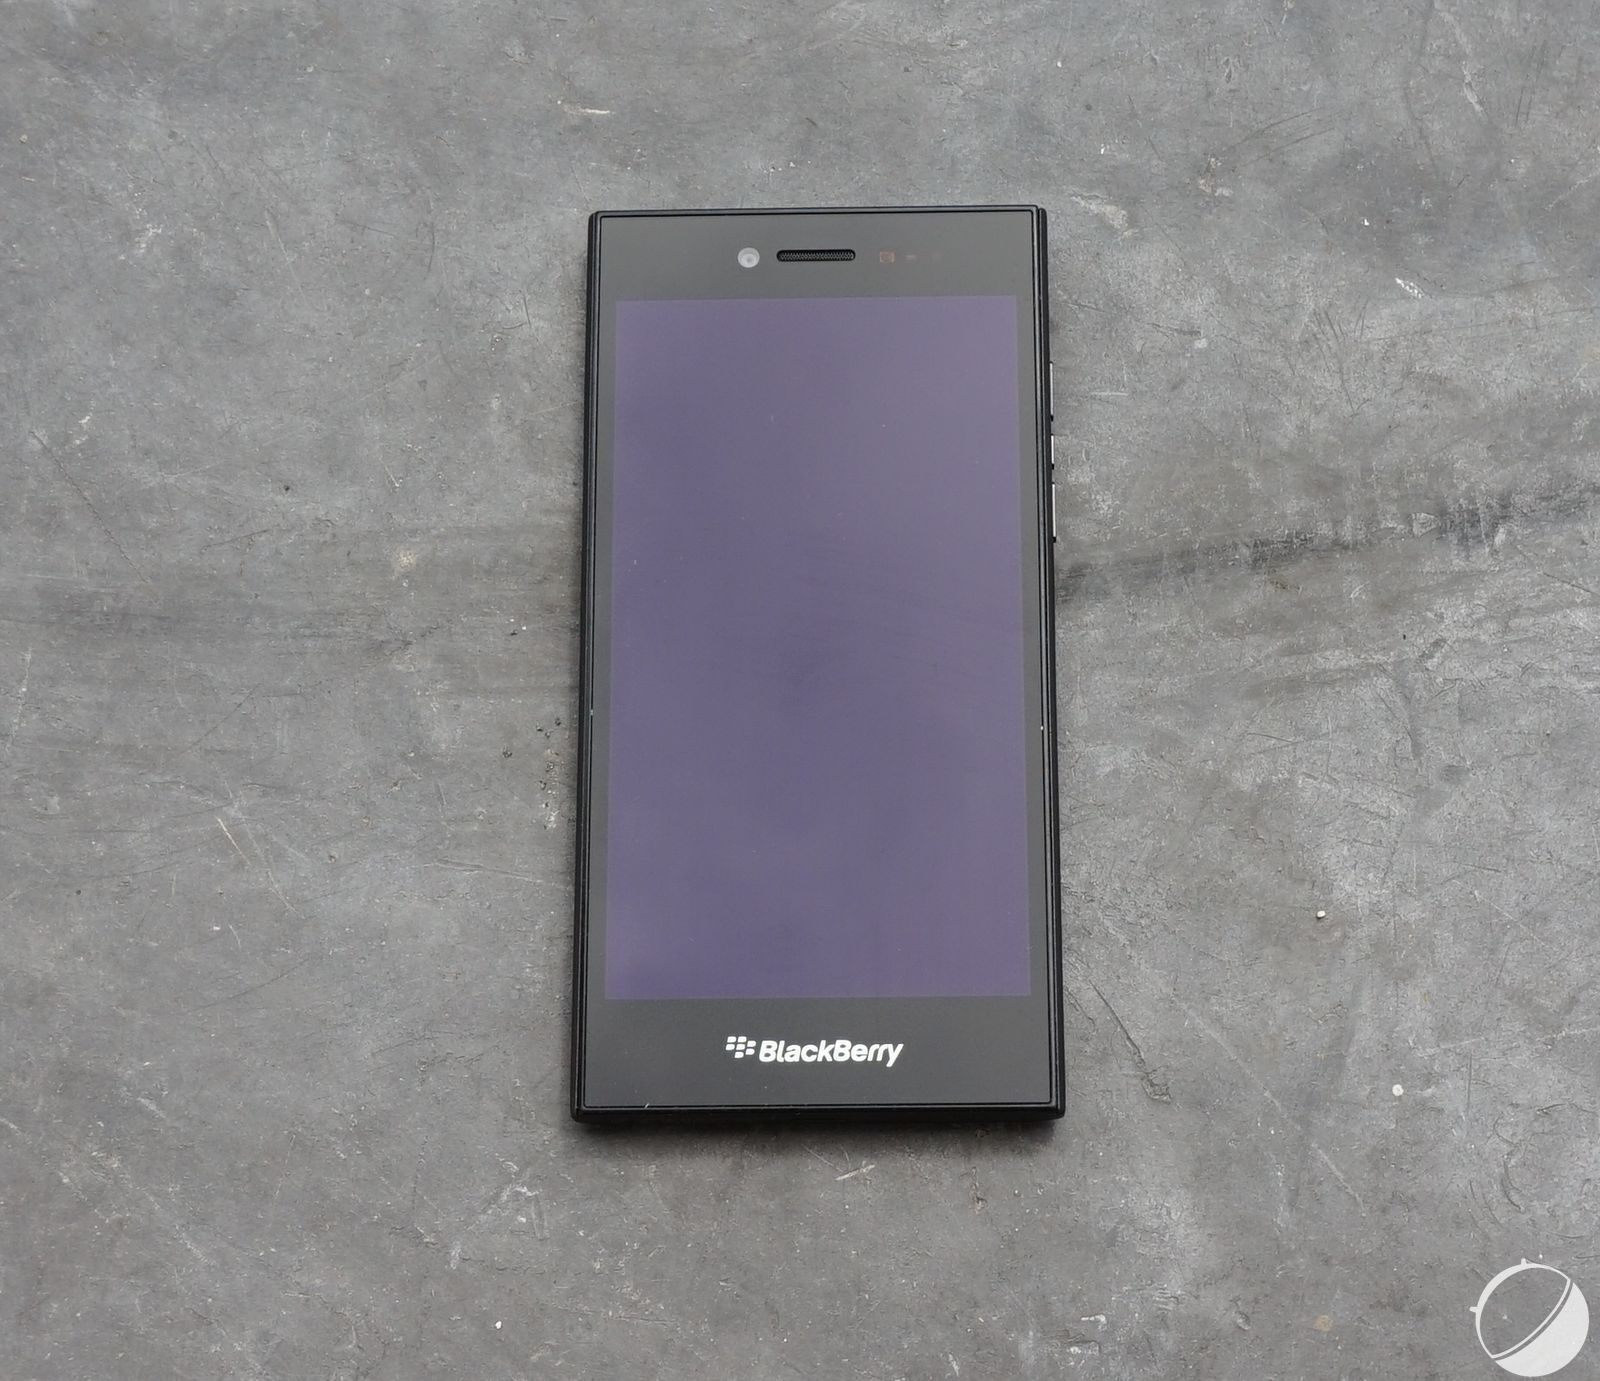 Prise en main du BlackBerry Leap : un Z30 légèrement remanié